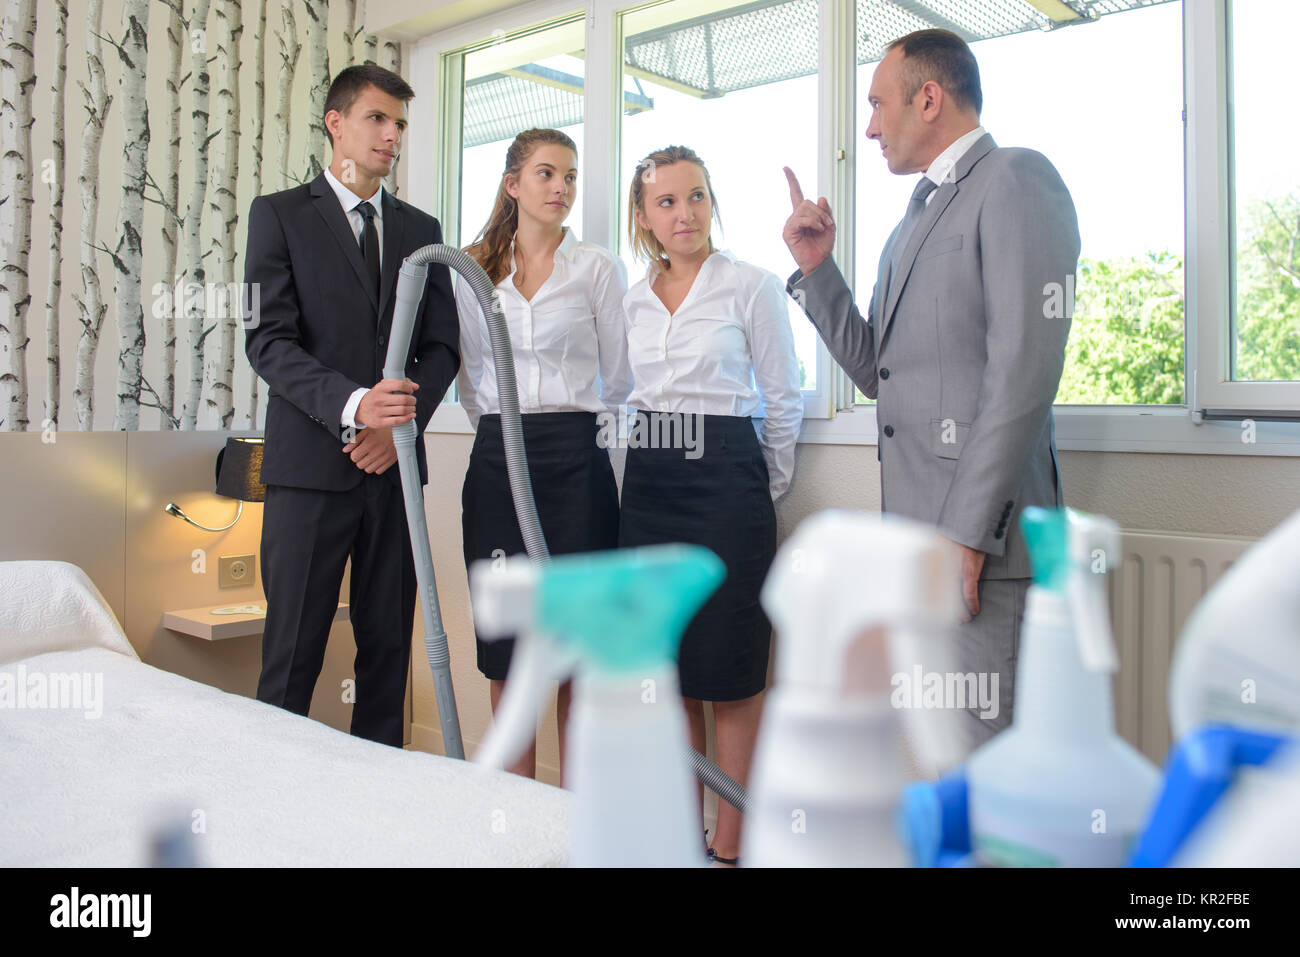 cleaning school - Stock Image